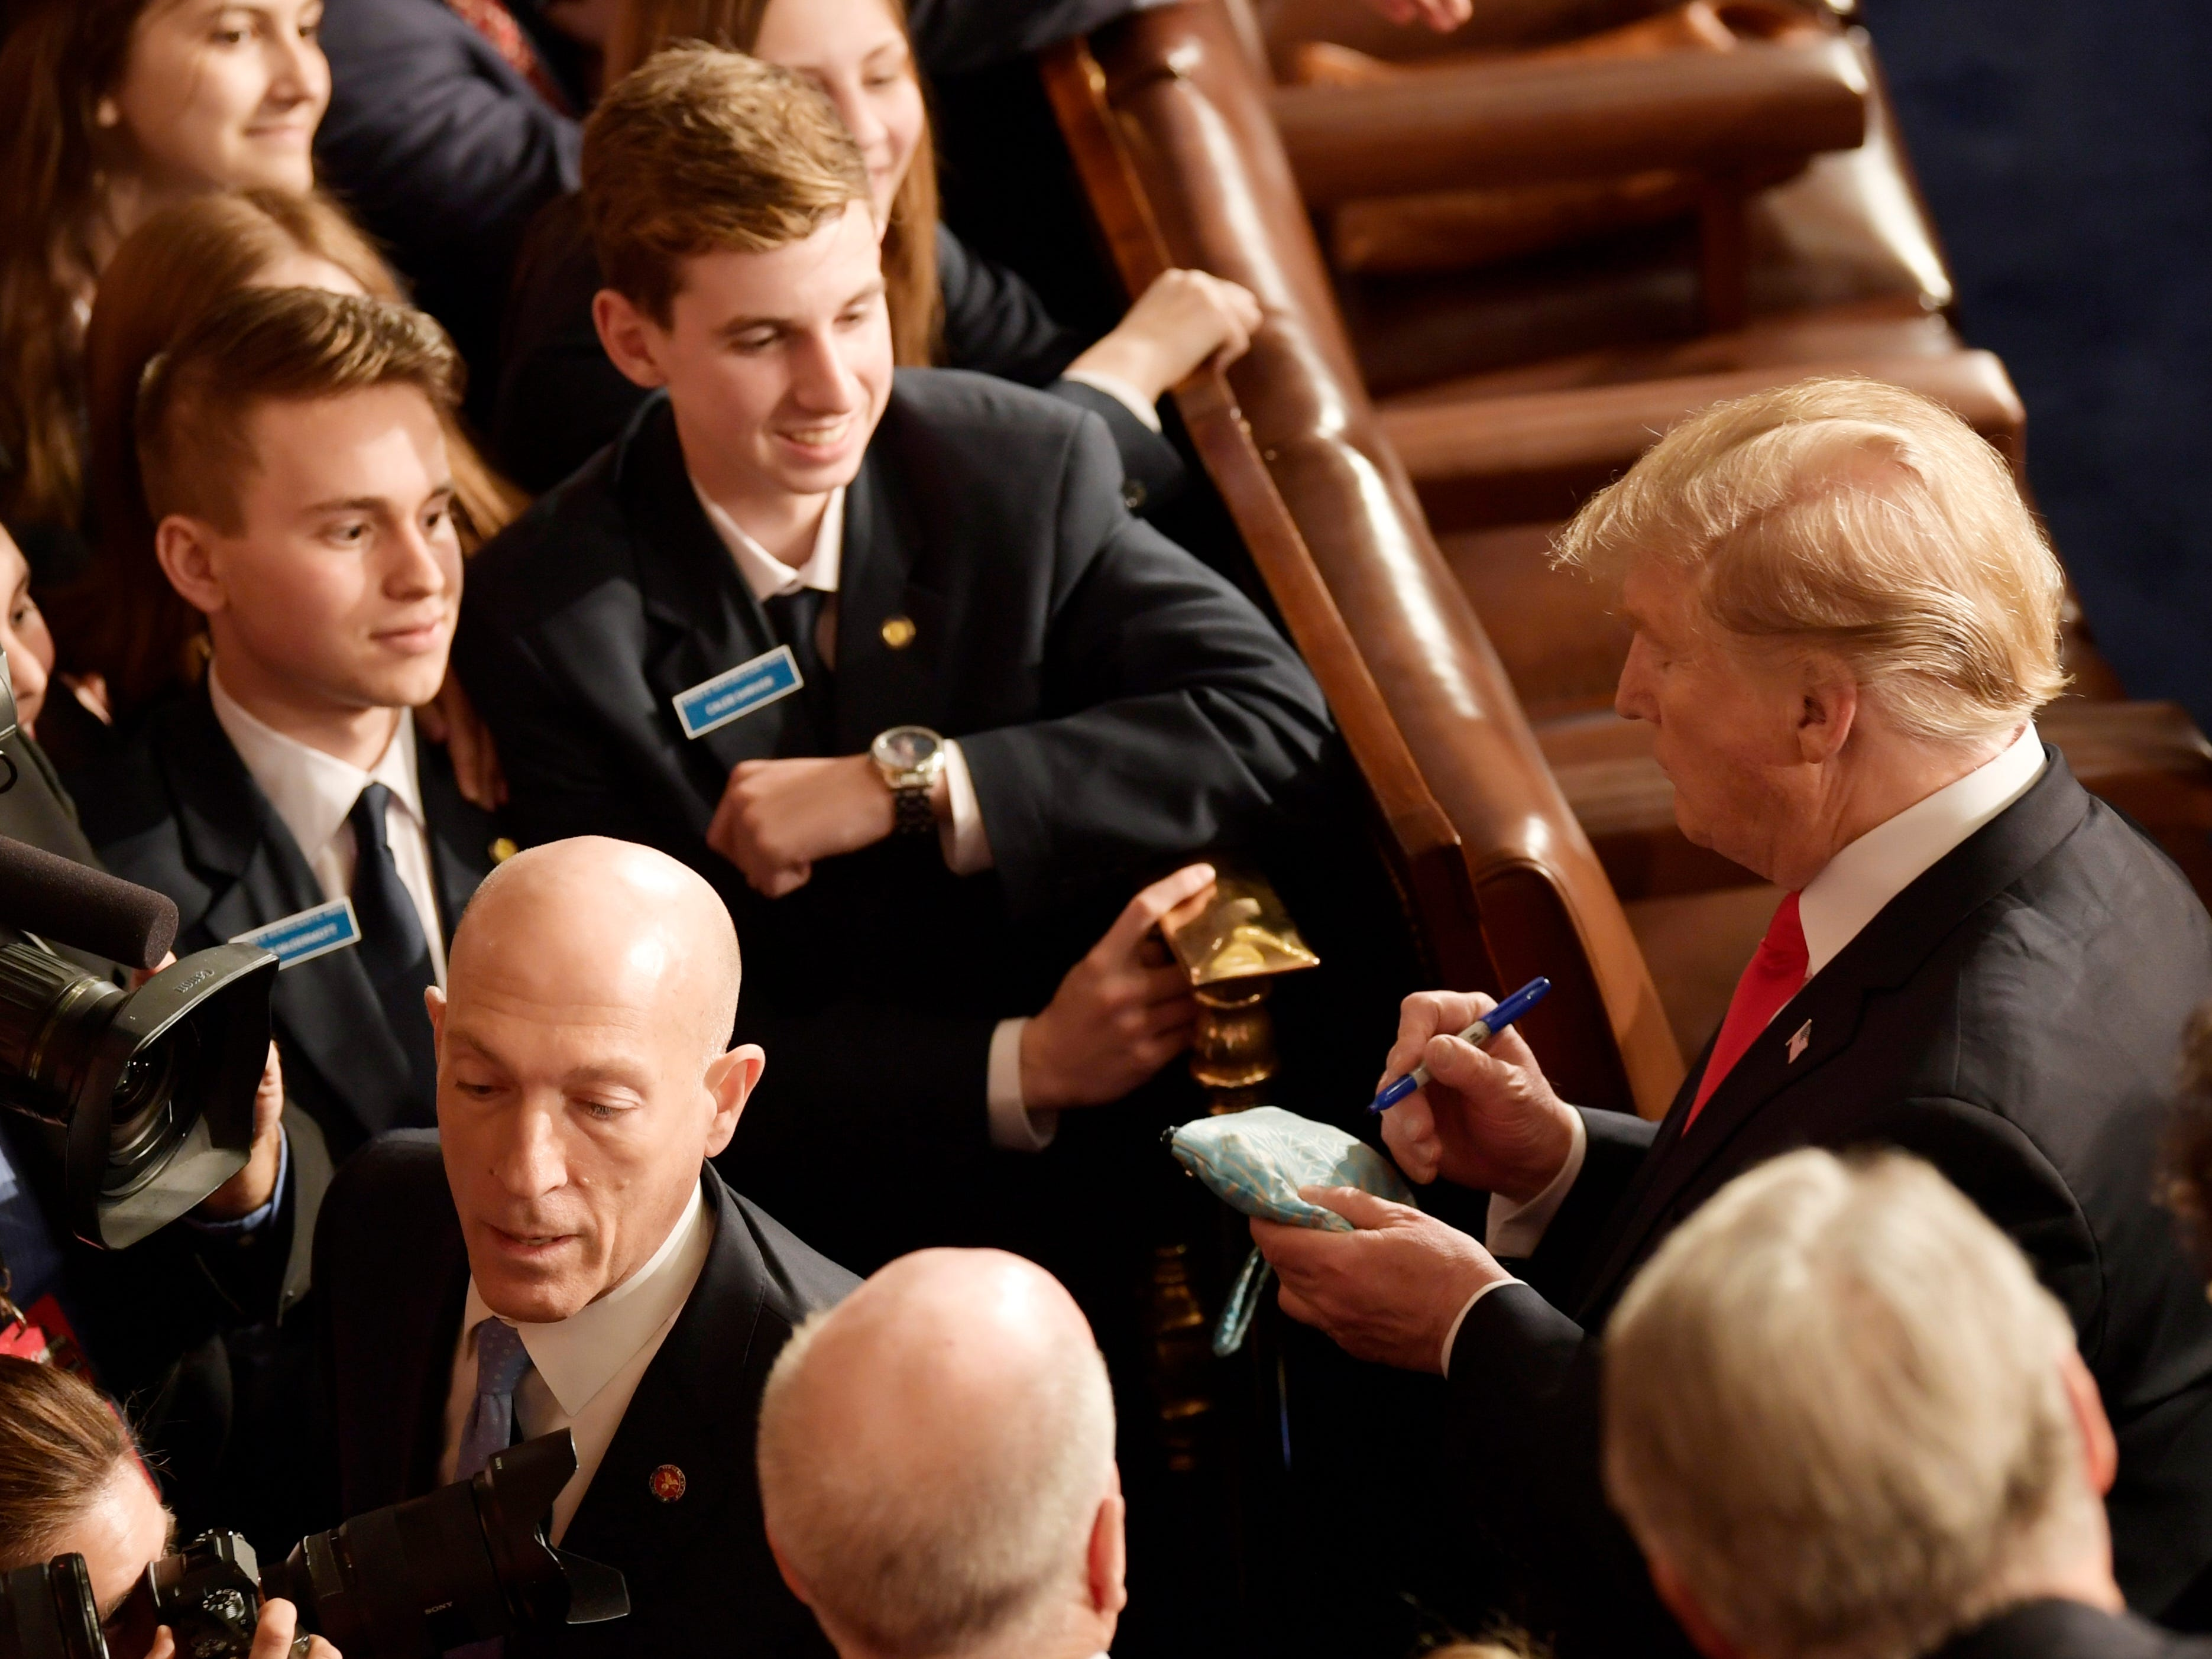 President Donald Trump signs an autograph after delivering the State of the Union address.